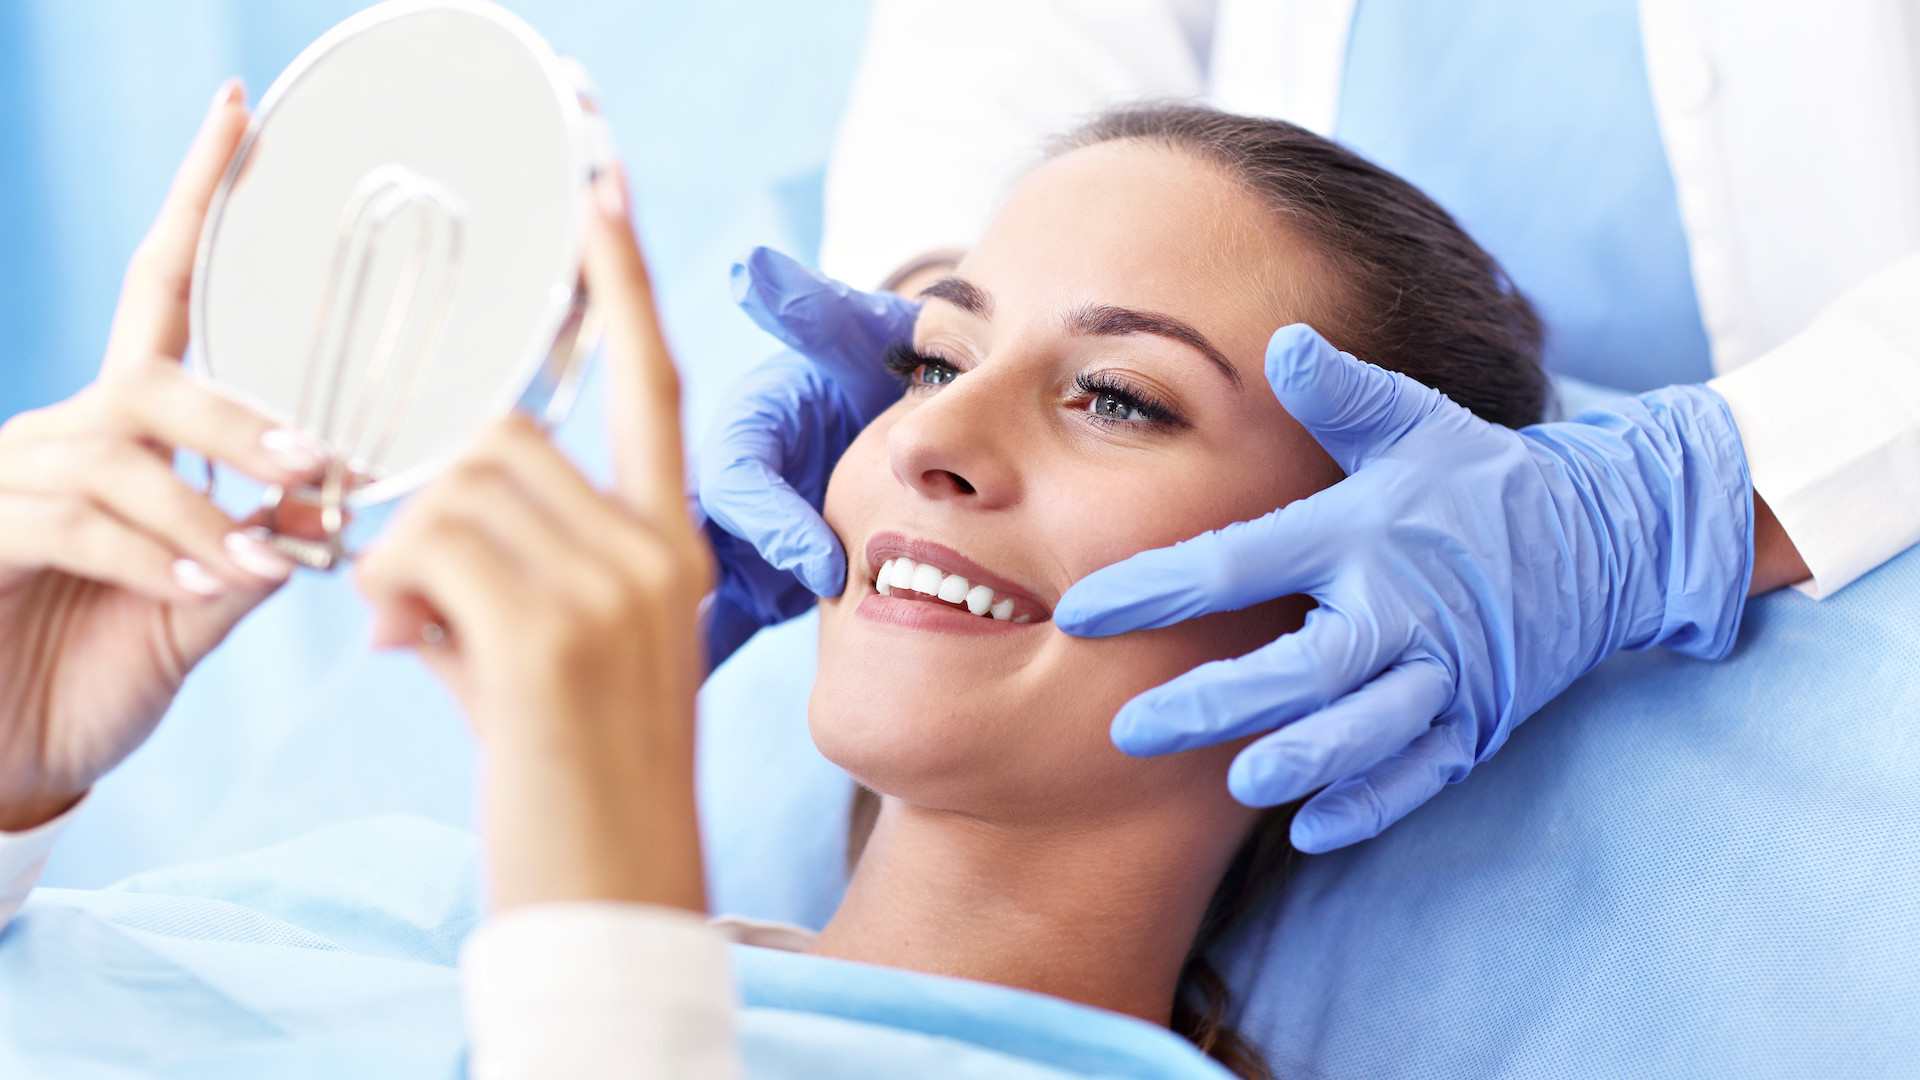 Let Cosmetic Dentist In Parramatta Resolve Your Dental Issues